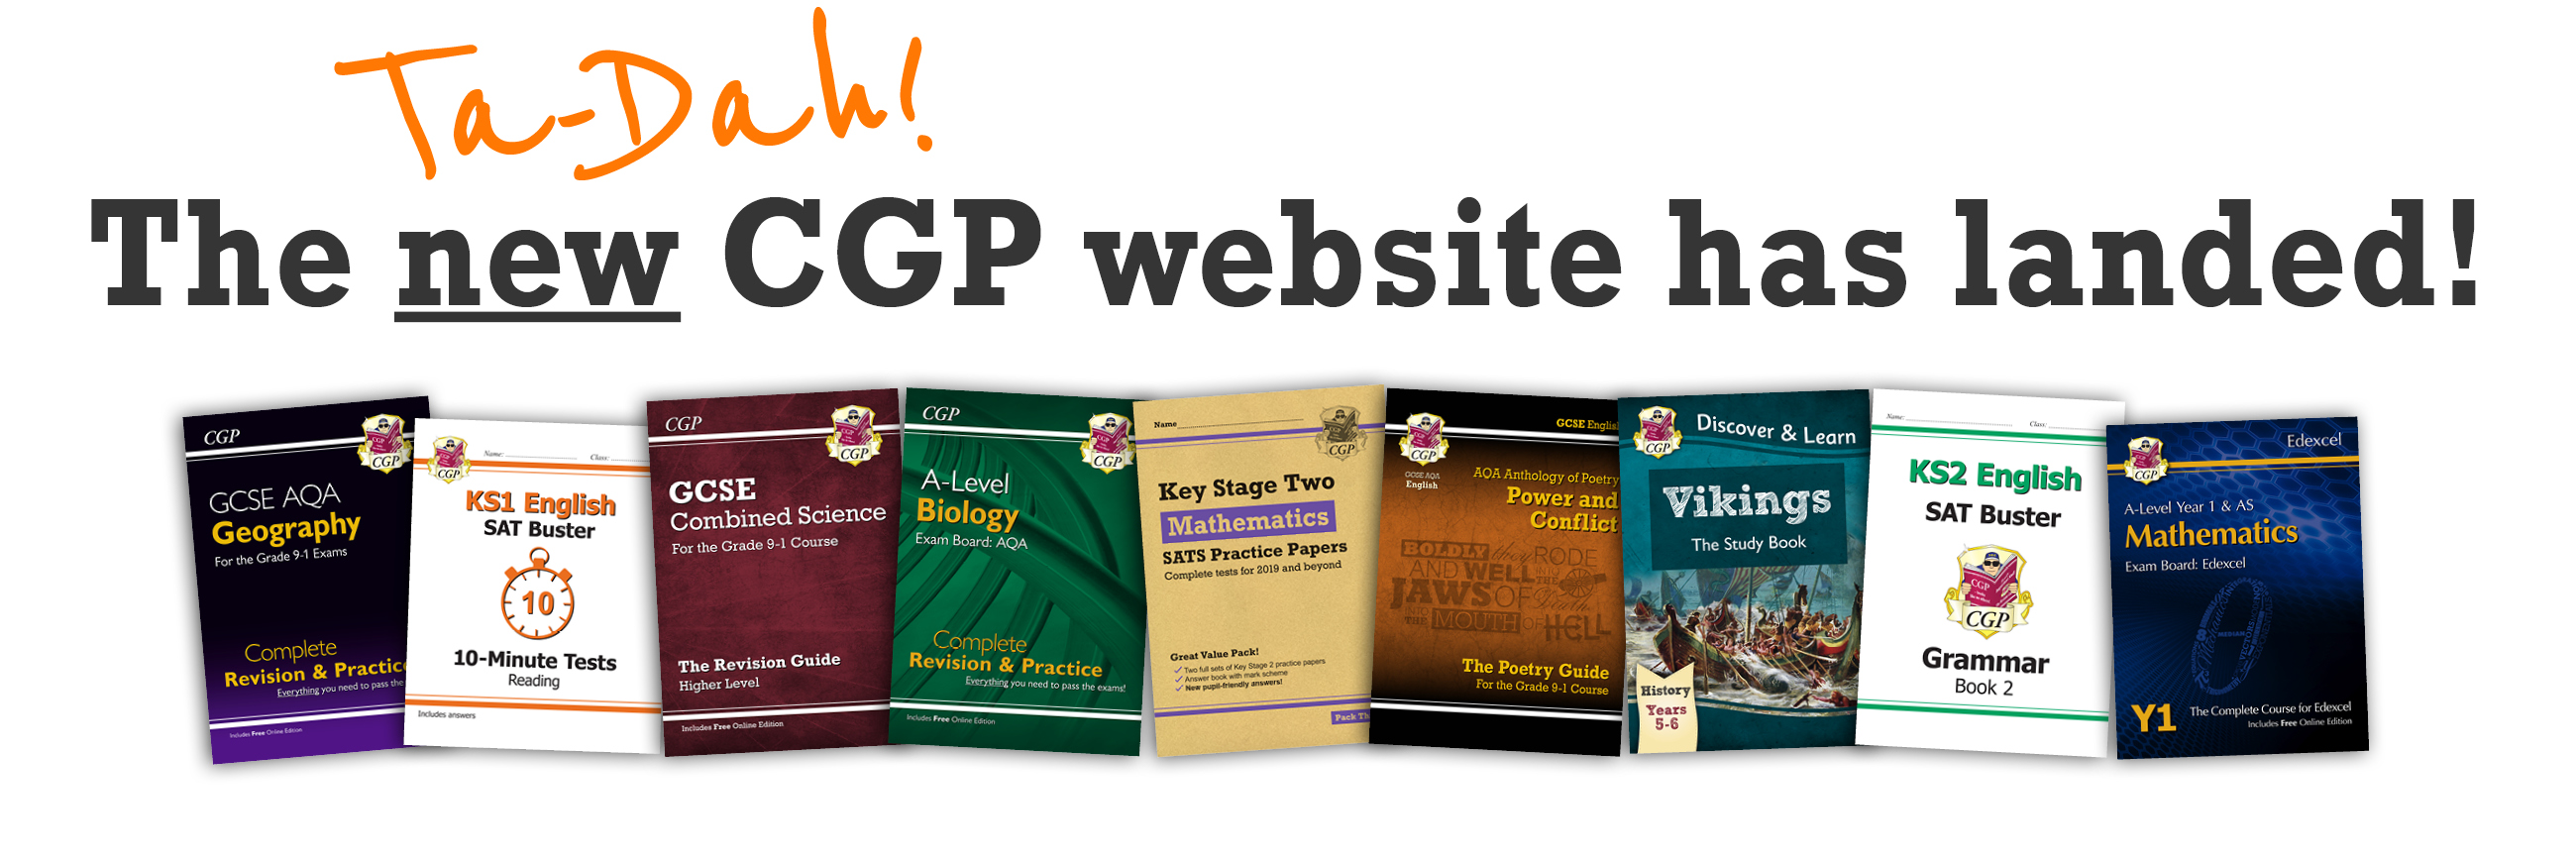 Welcome to the Shiny New CGP Website